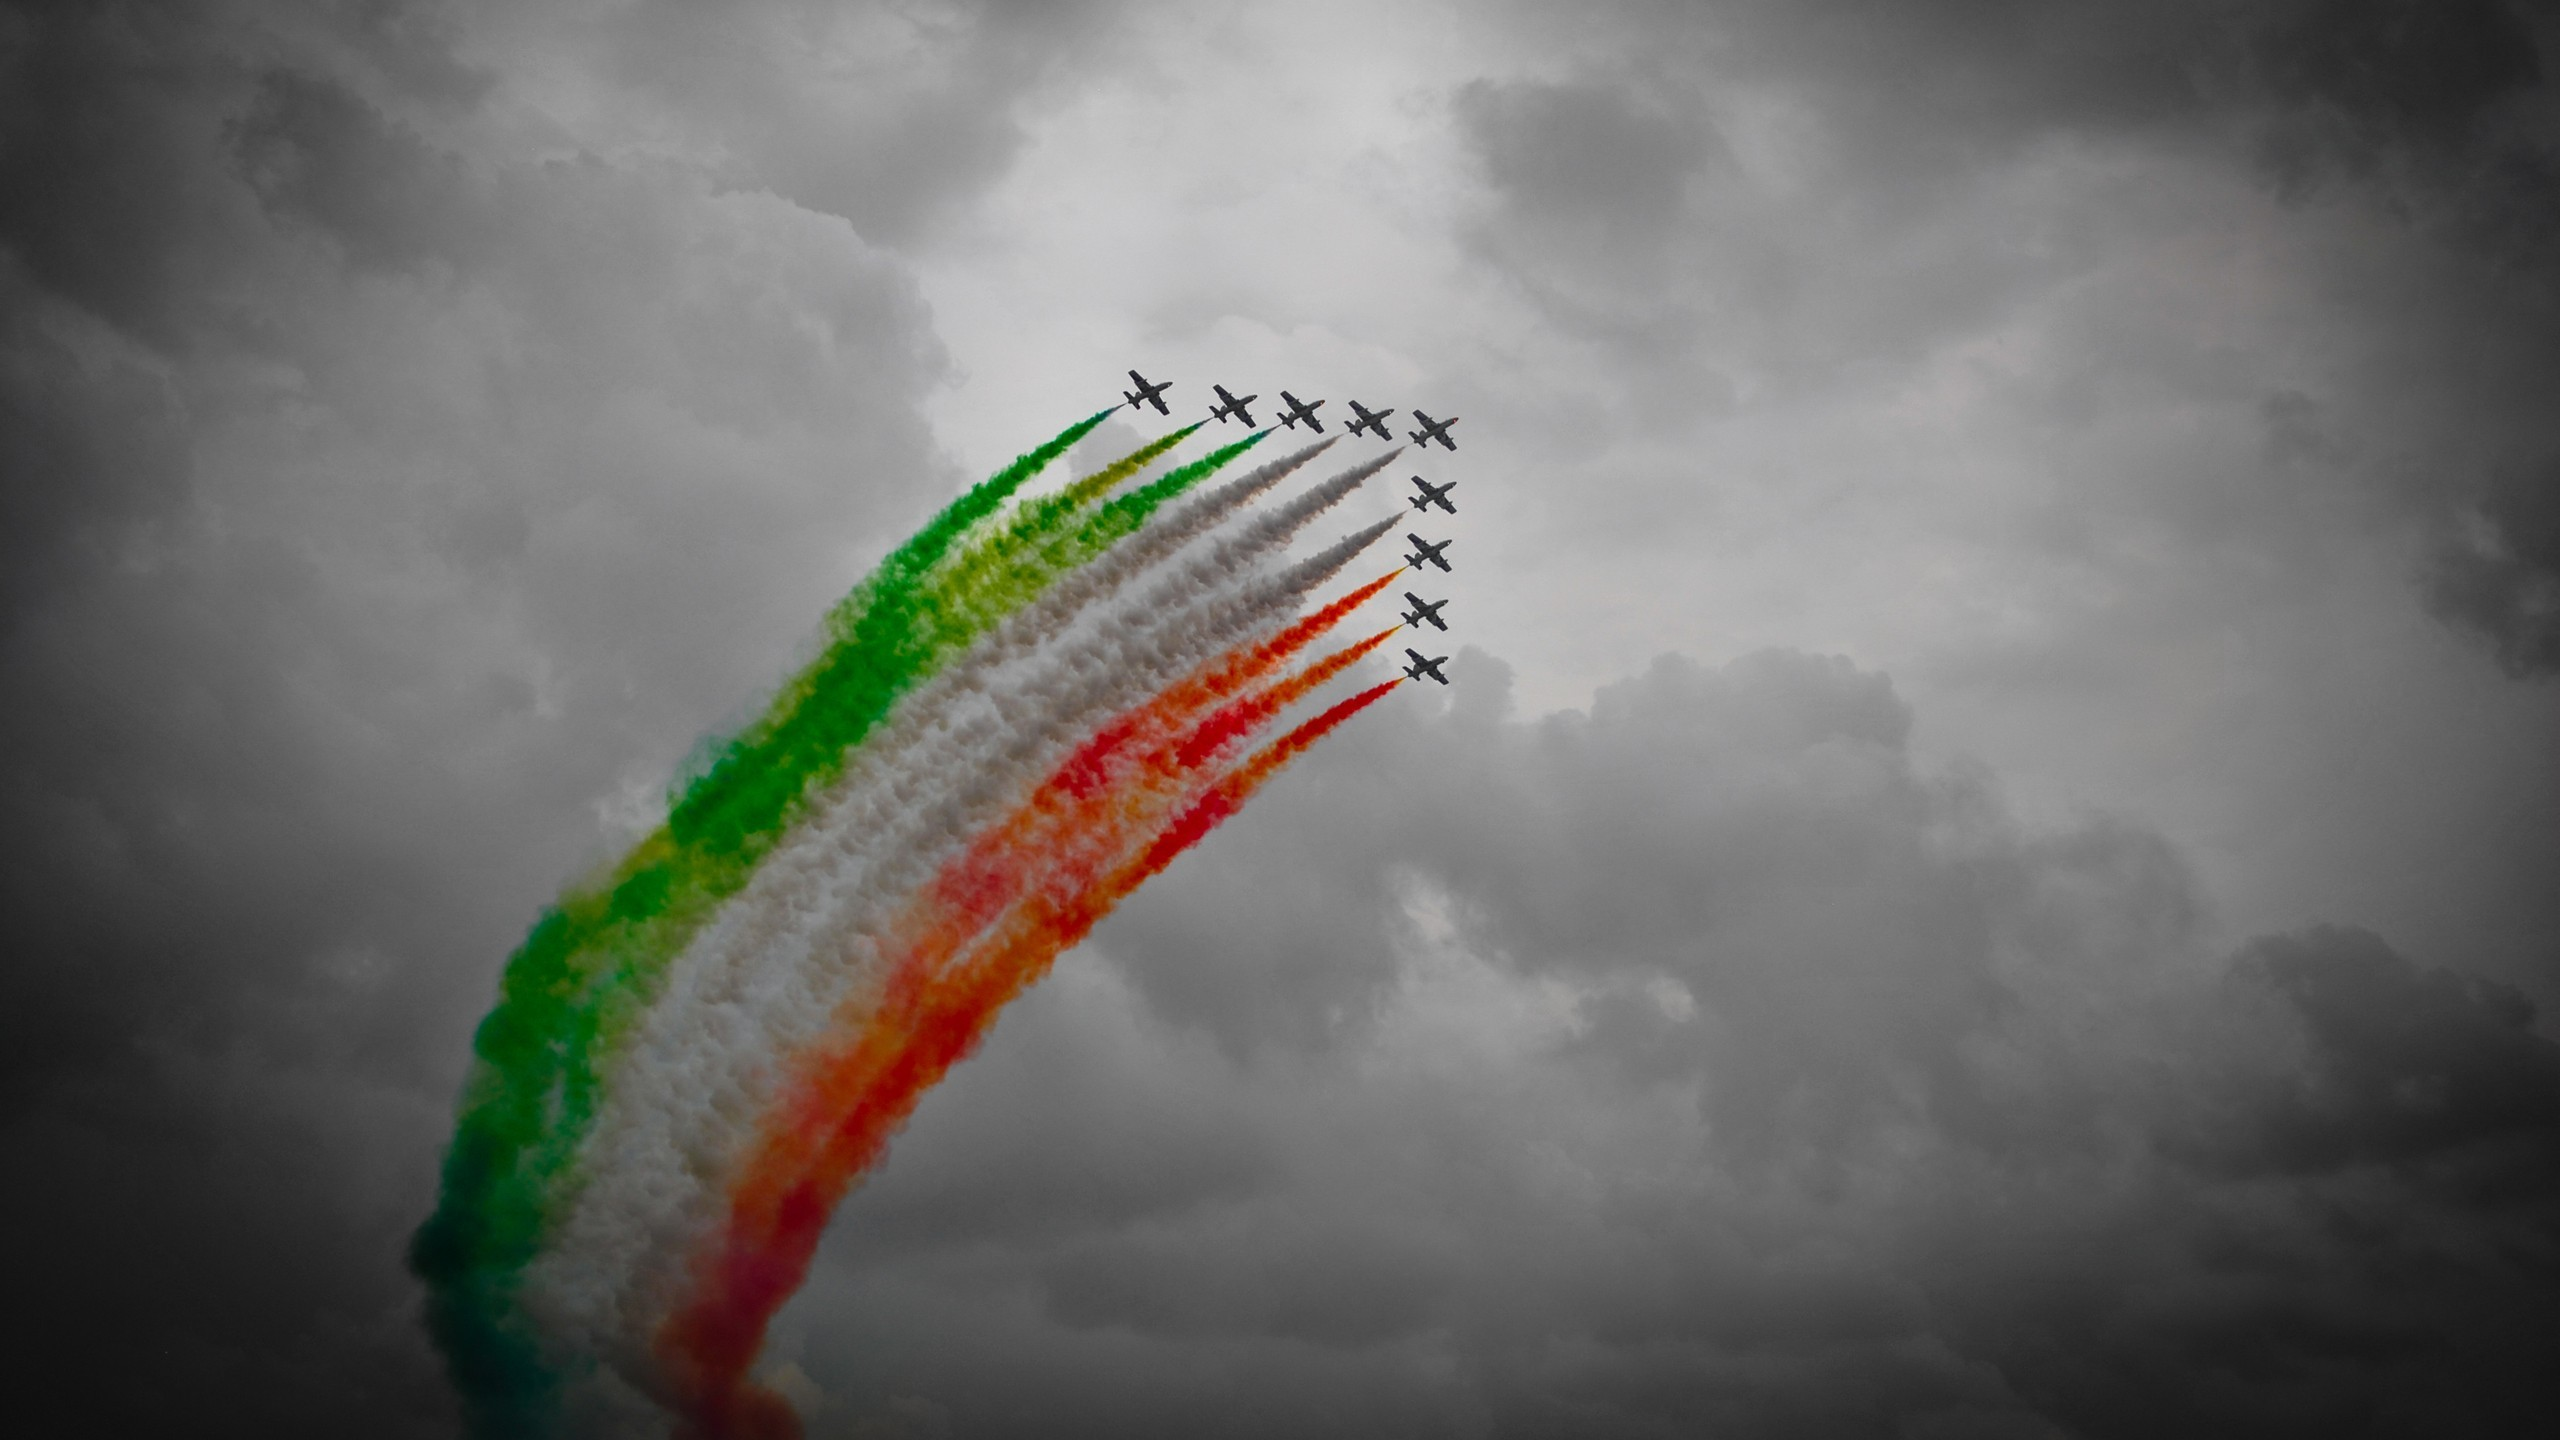 General 2560x1440 Frecce Tricolori selective coloring photography aircraft airplane Italian Air Force Italy